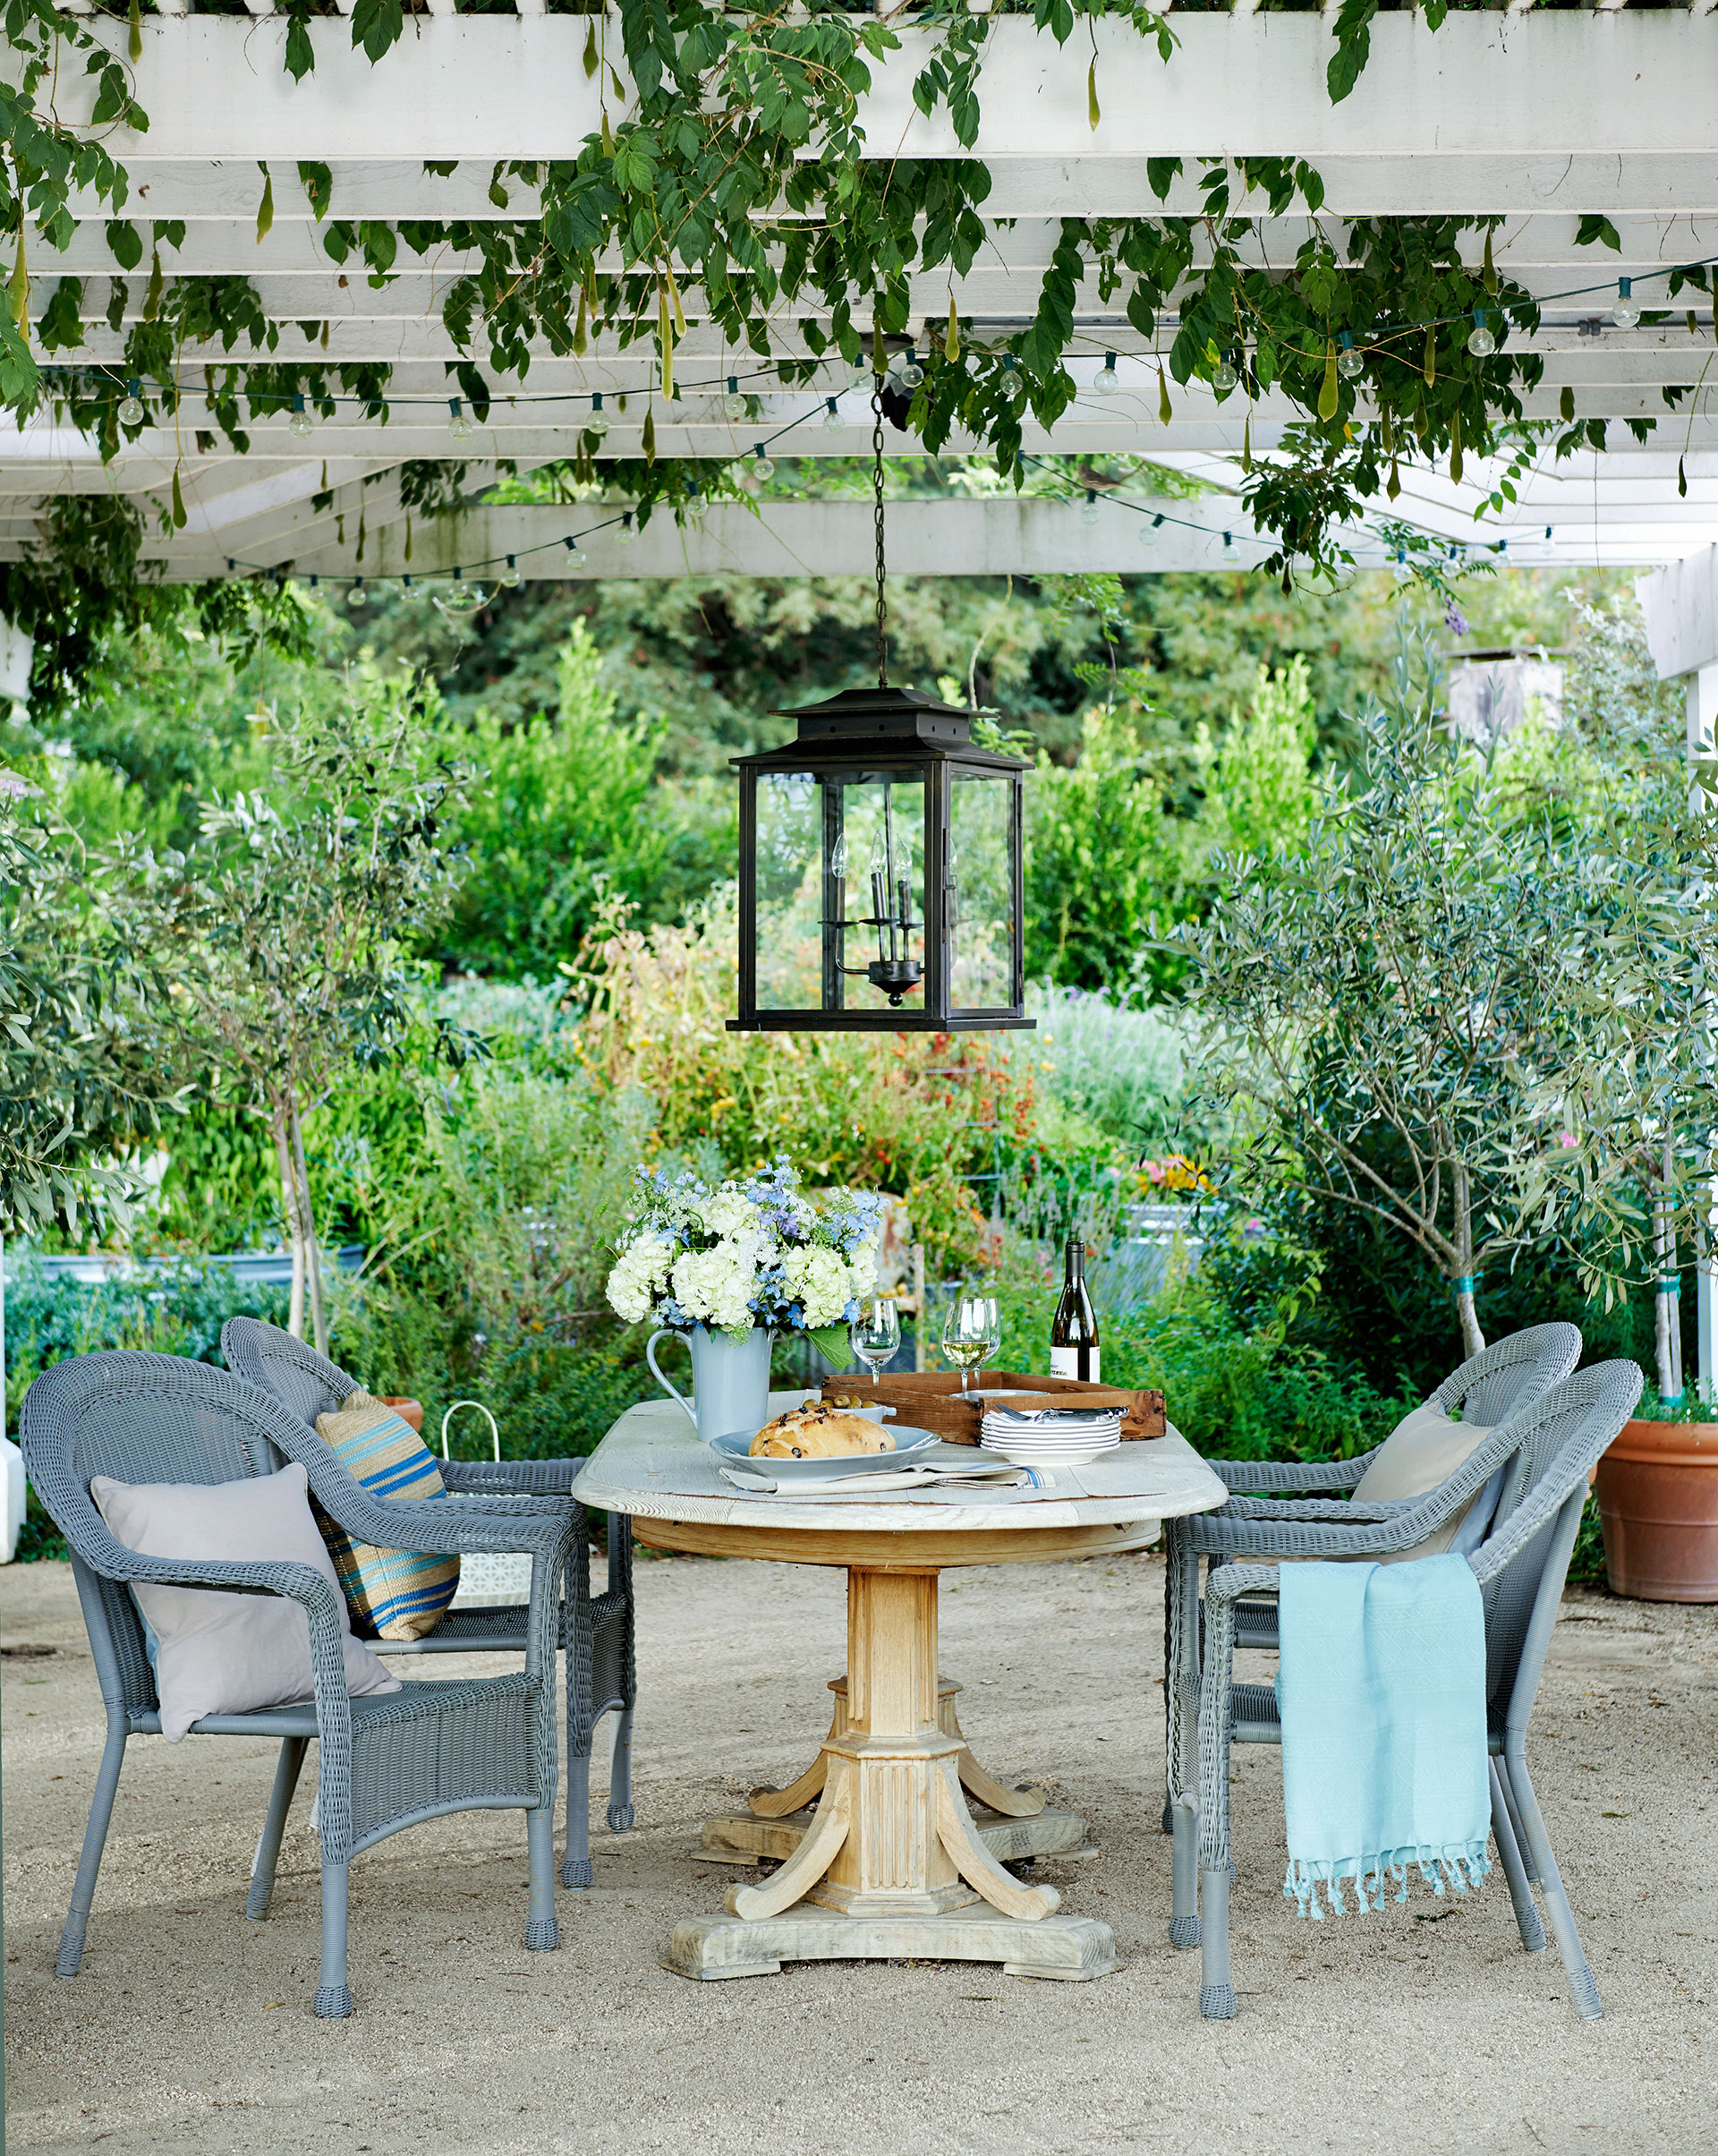 Outdoor Decor Ideas. 100 Outdoor Patio Decorating Ideas Outdoor Diy ...